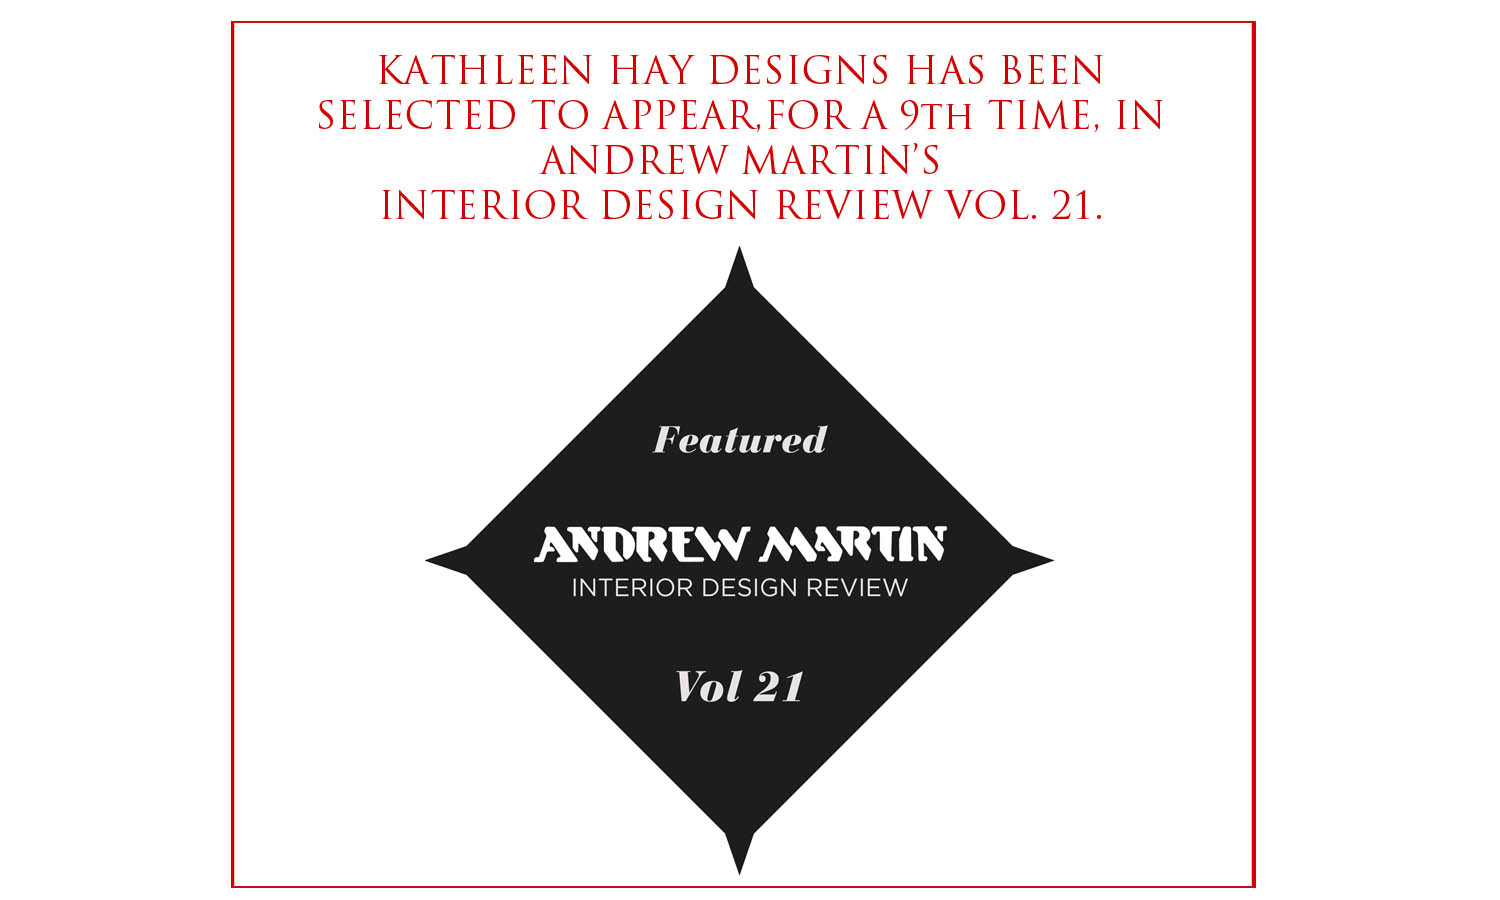 Kathleen Hay Designs Selected For Andrew Martin Interior Design Review Vol 21 Kathleen Hay Designs